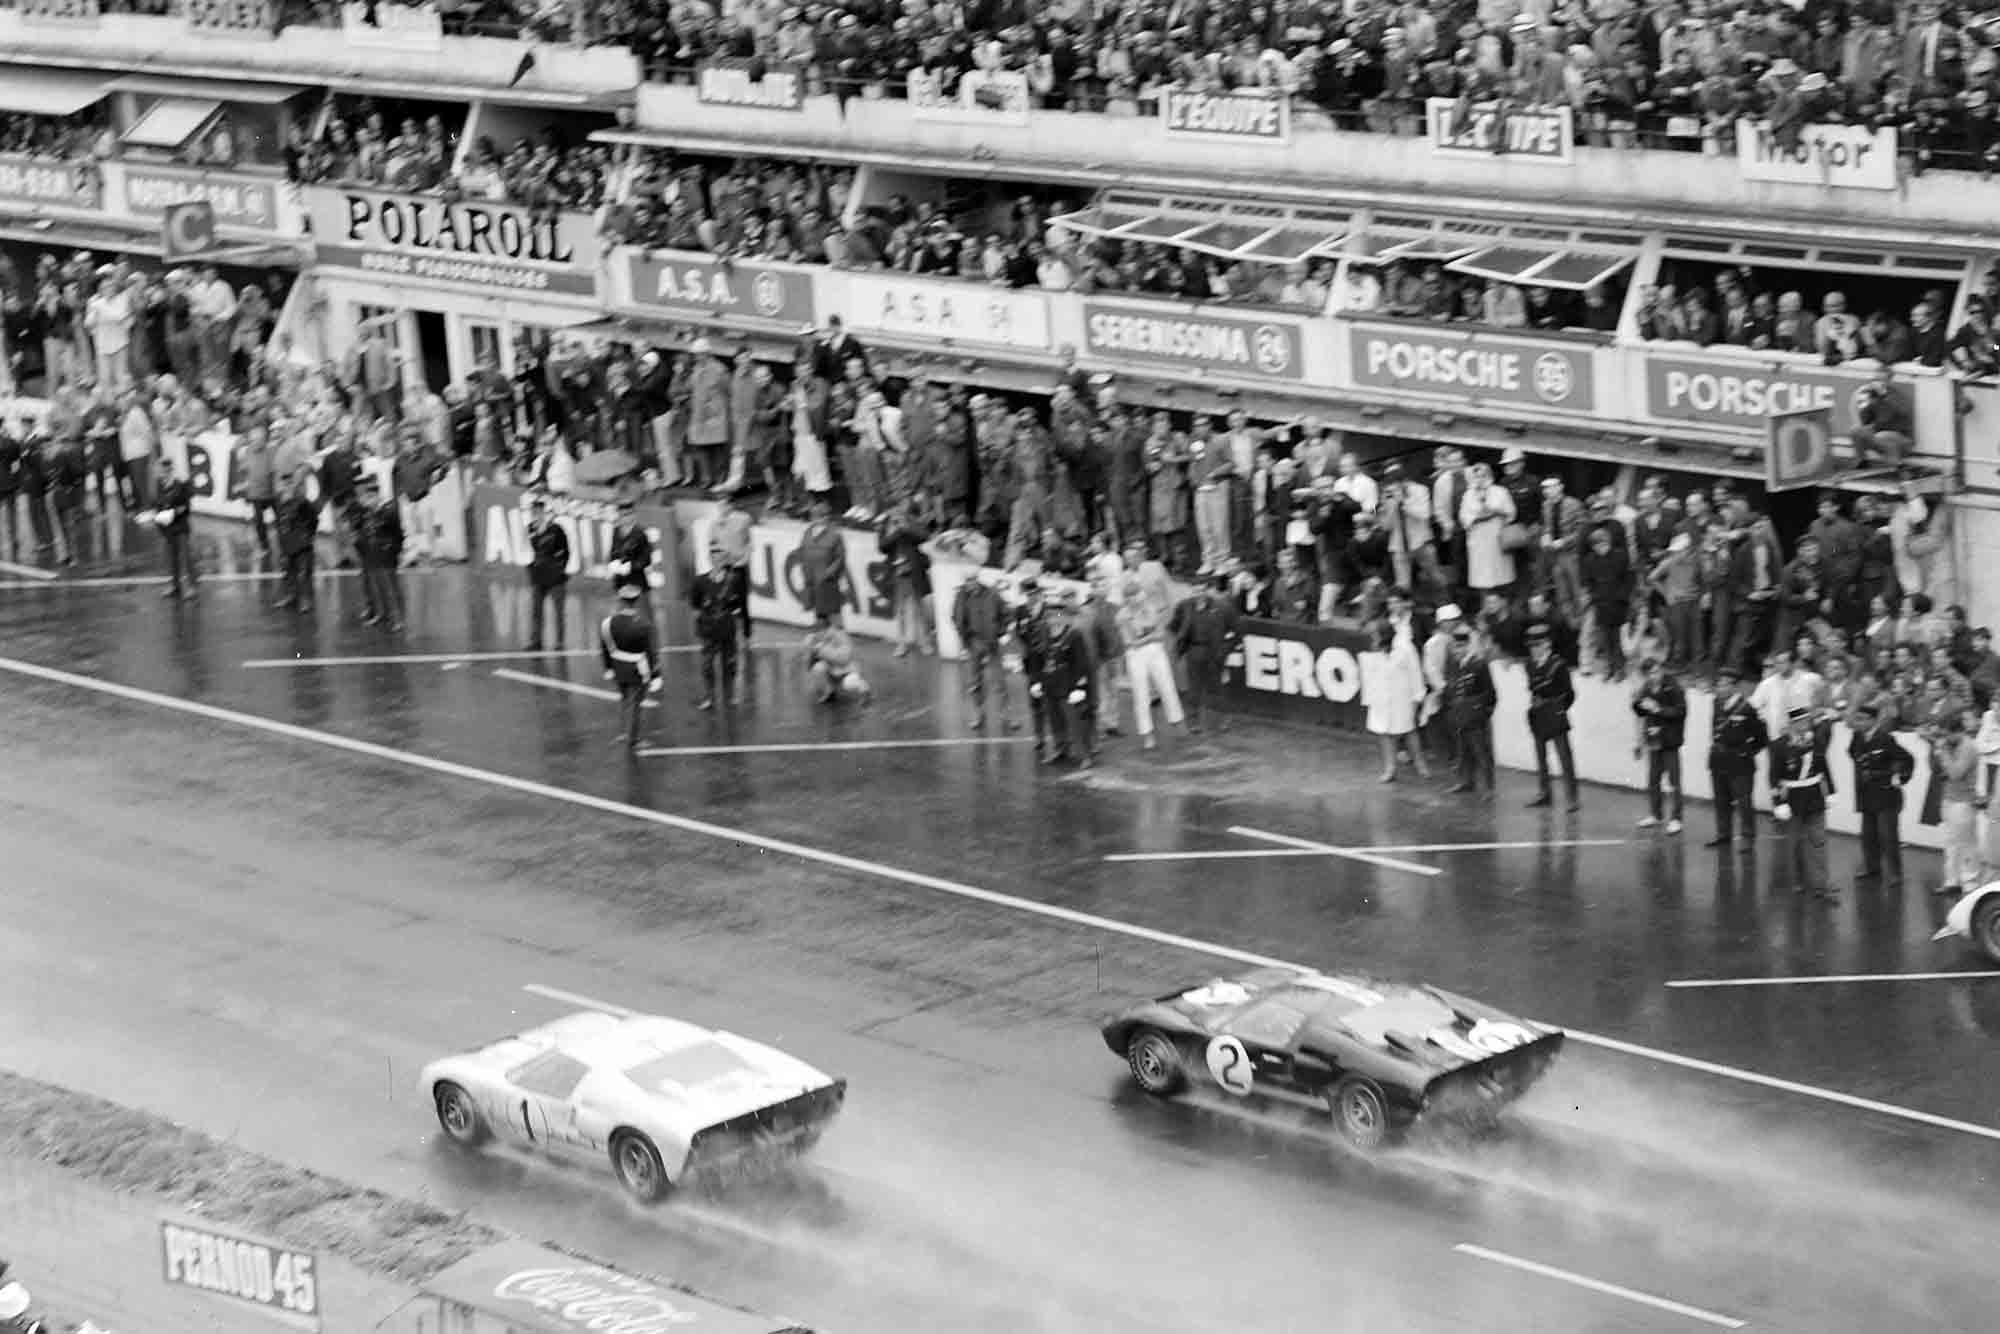 The Ford drivers hesitantly attempt a formation finish